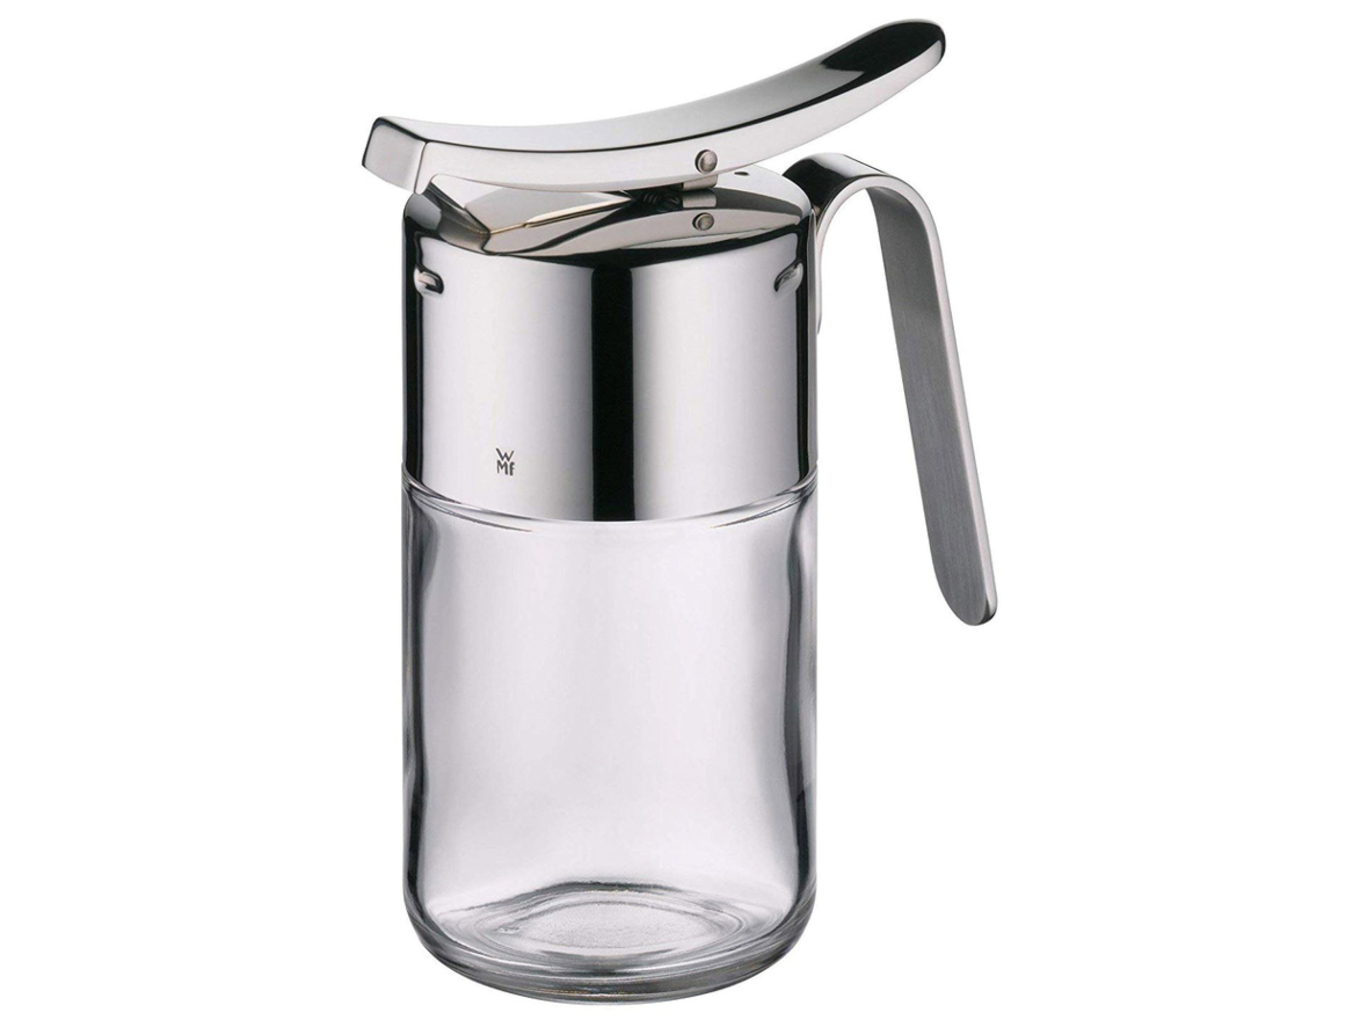 WMF Barista Honey/Syrup Dispenser image 1